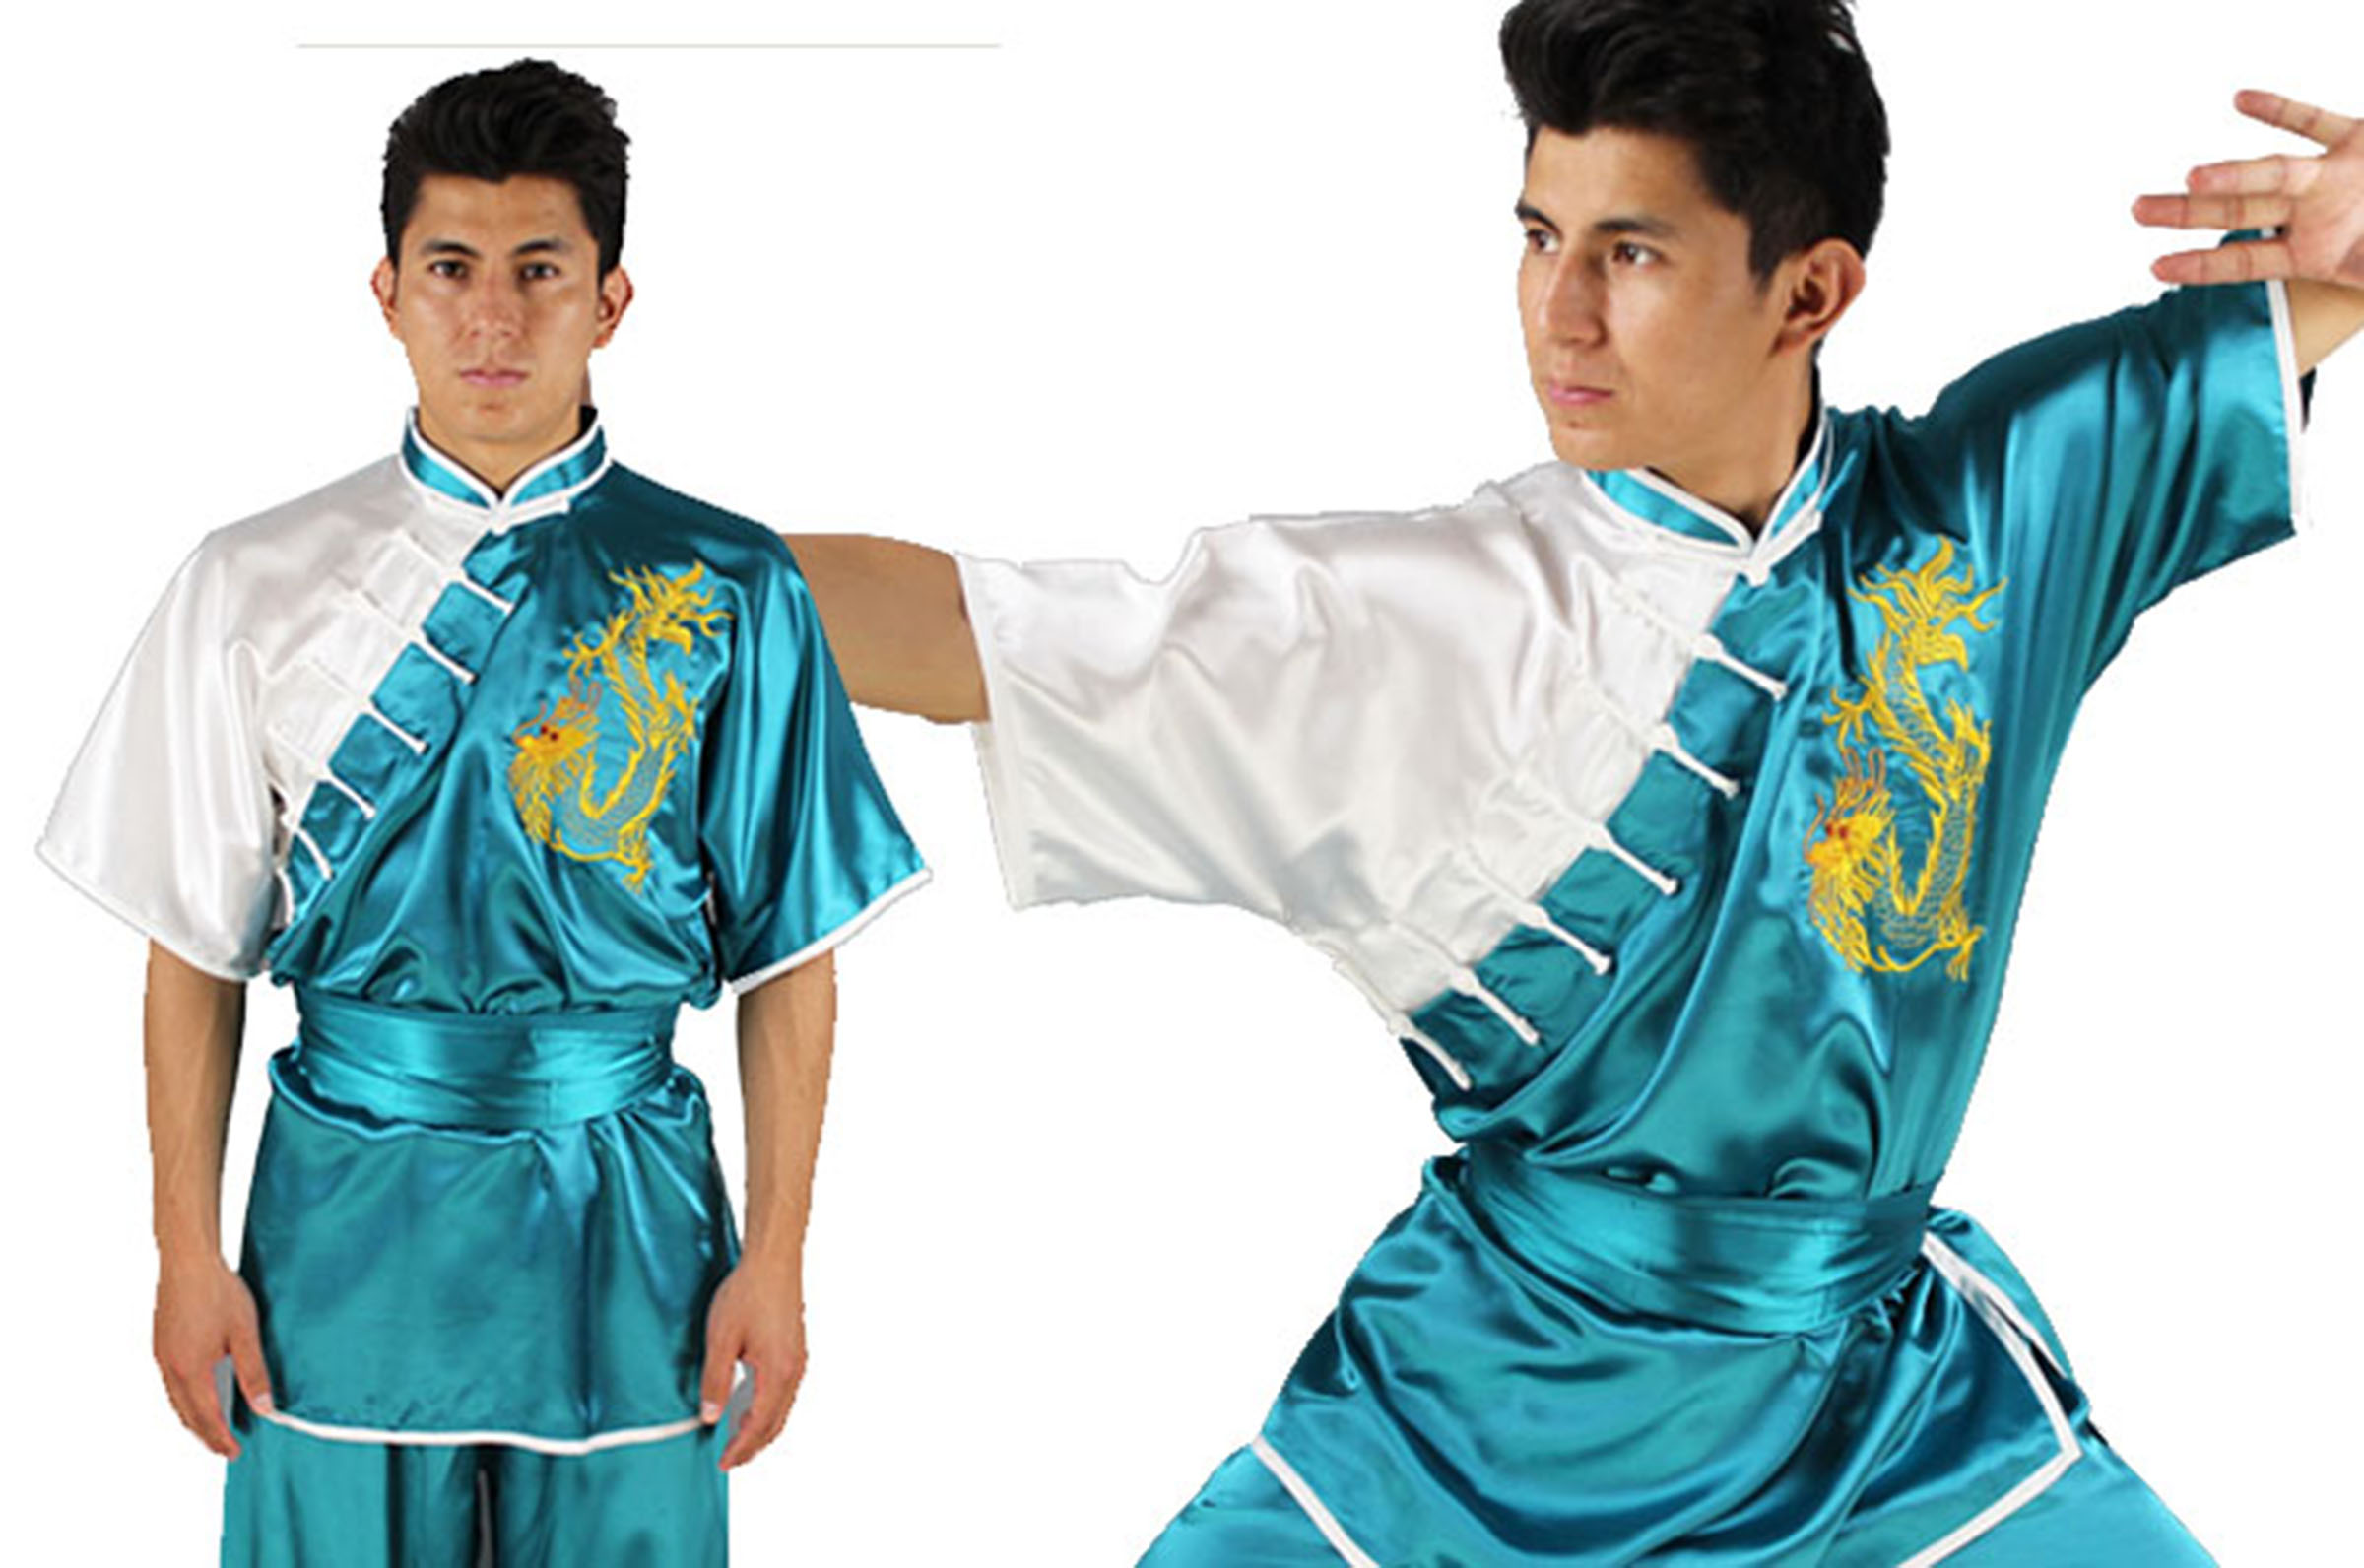 Sporting Goods Uniforme Kimono Kung Fu Chang Quan Shan Xi Amarillo Drago Bordado Other Combat Sport Supplies